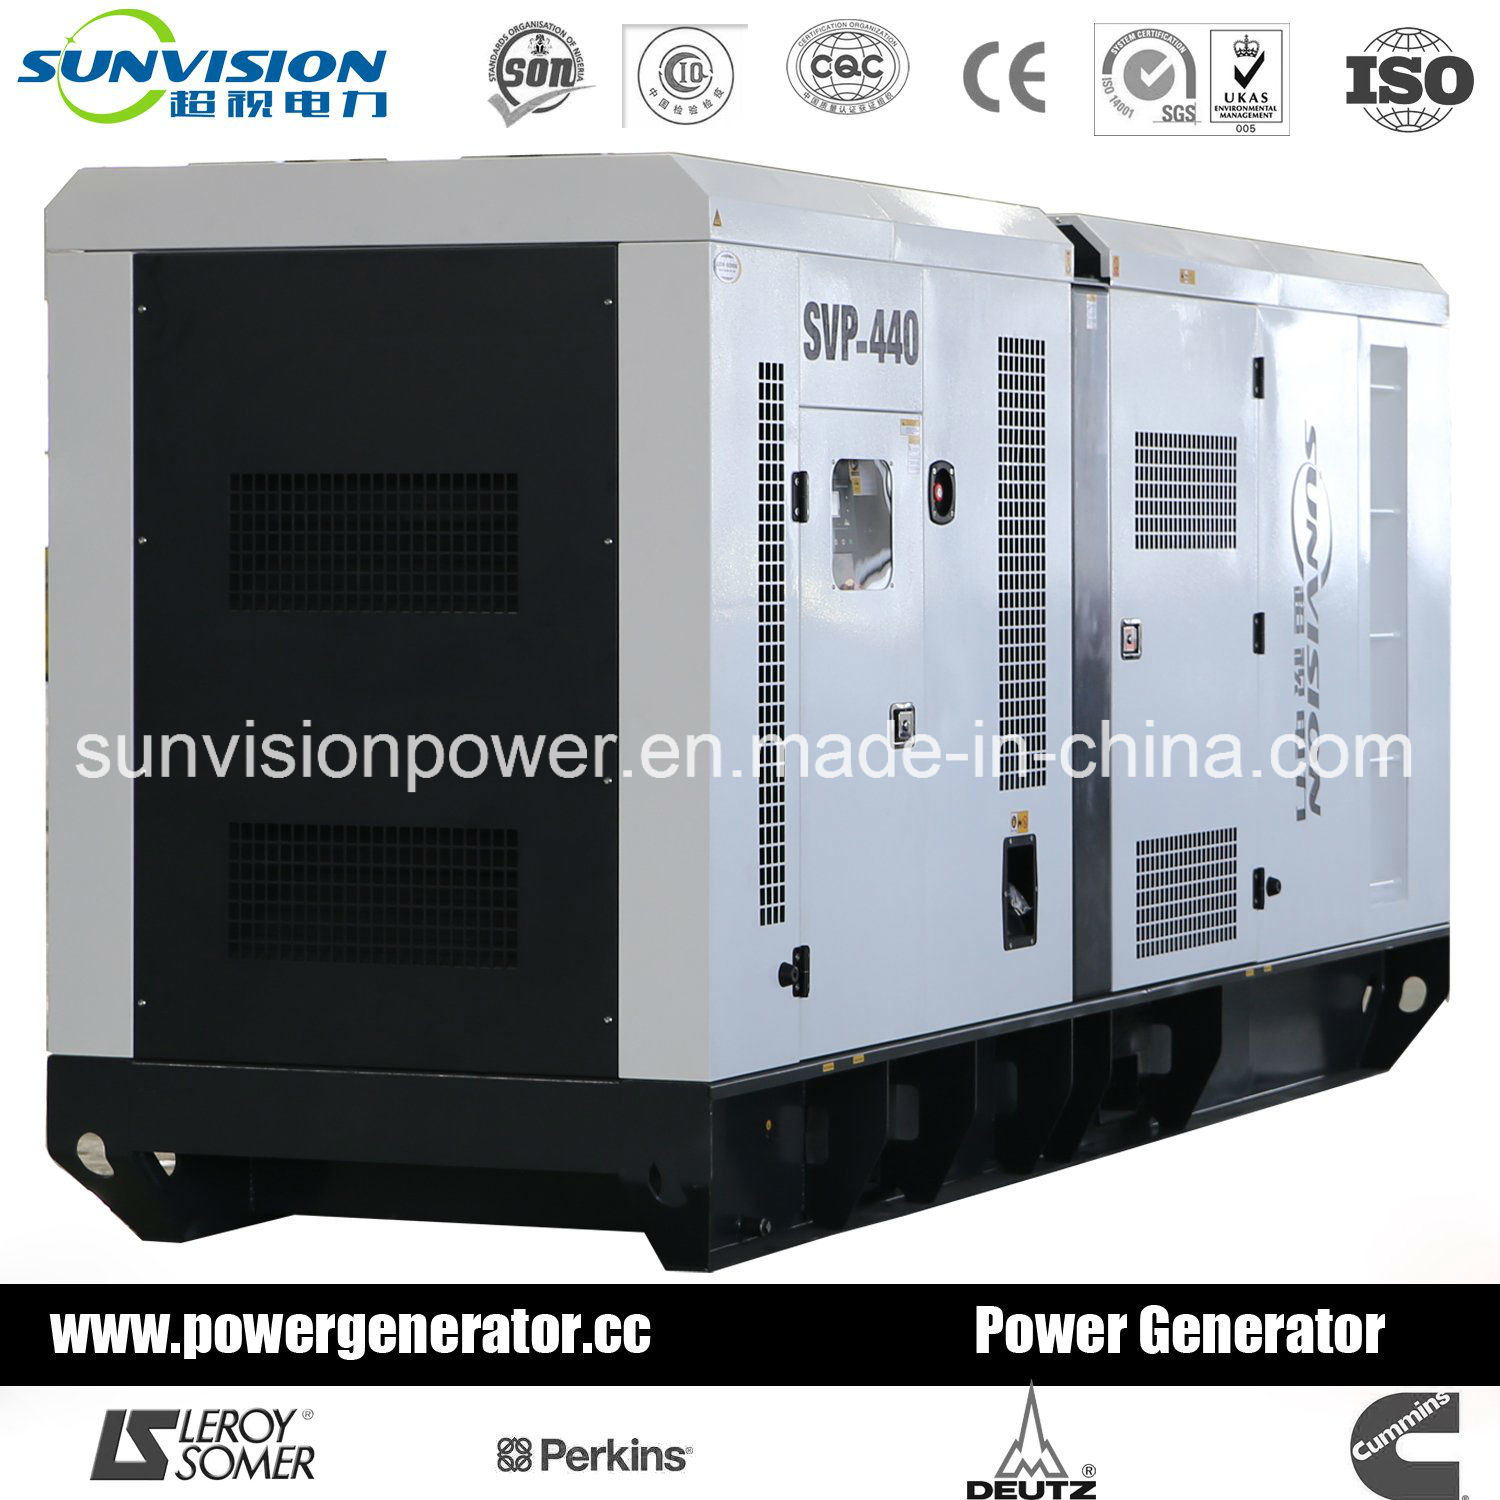 with 500kVA Perkins Engine Generator with Super Silent Enclosure